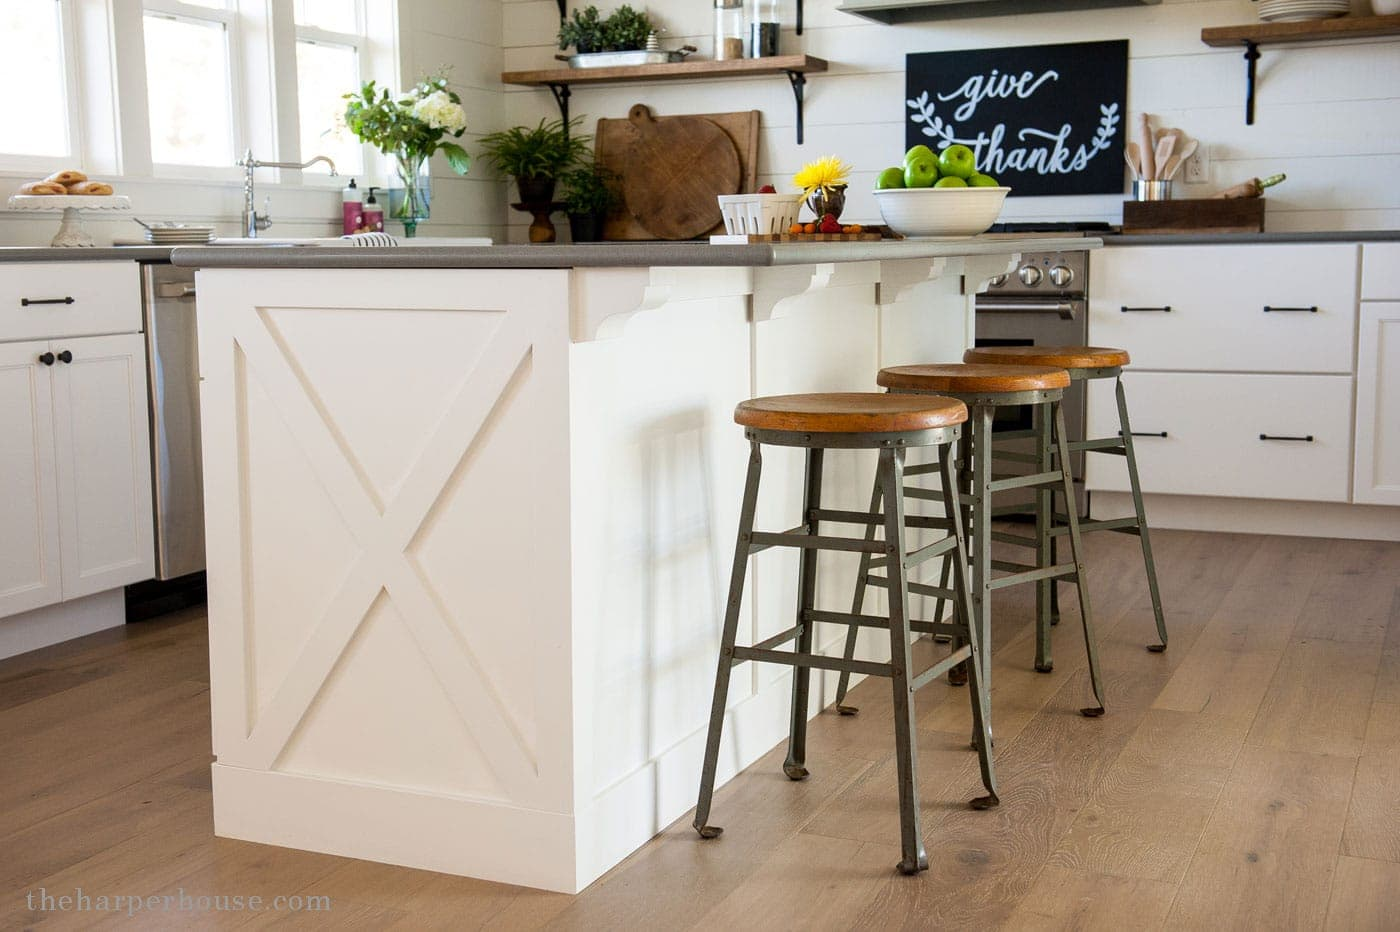 Diy Kitchen Cabinet X Style Detail From Our Fixer Upper Farmhouse Kitchen  Reveal | Www.